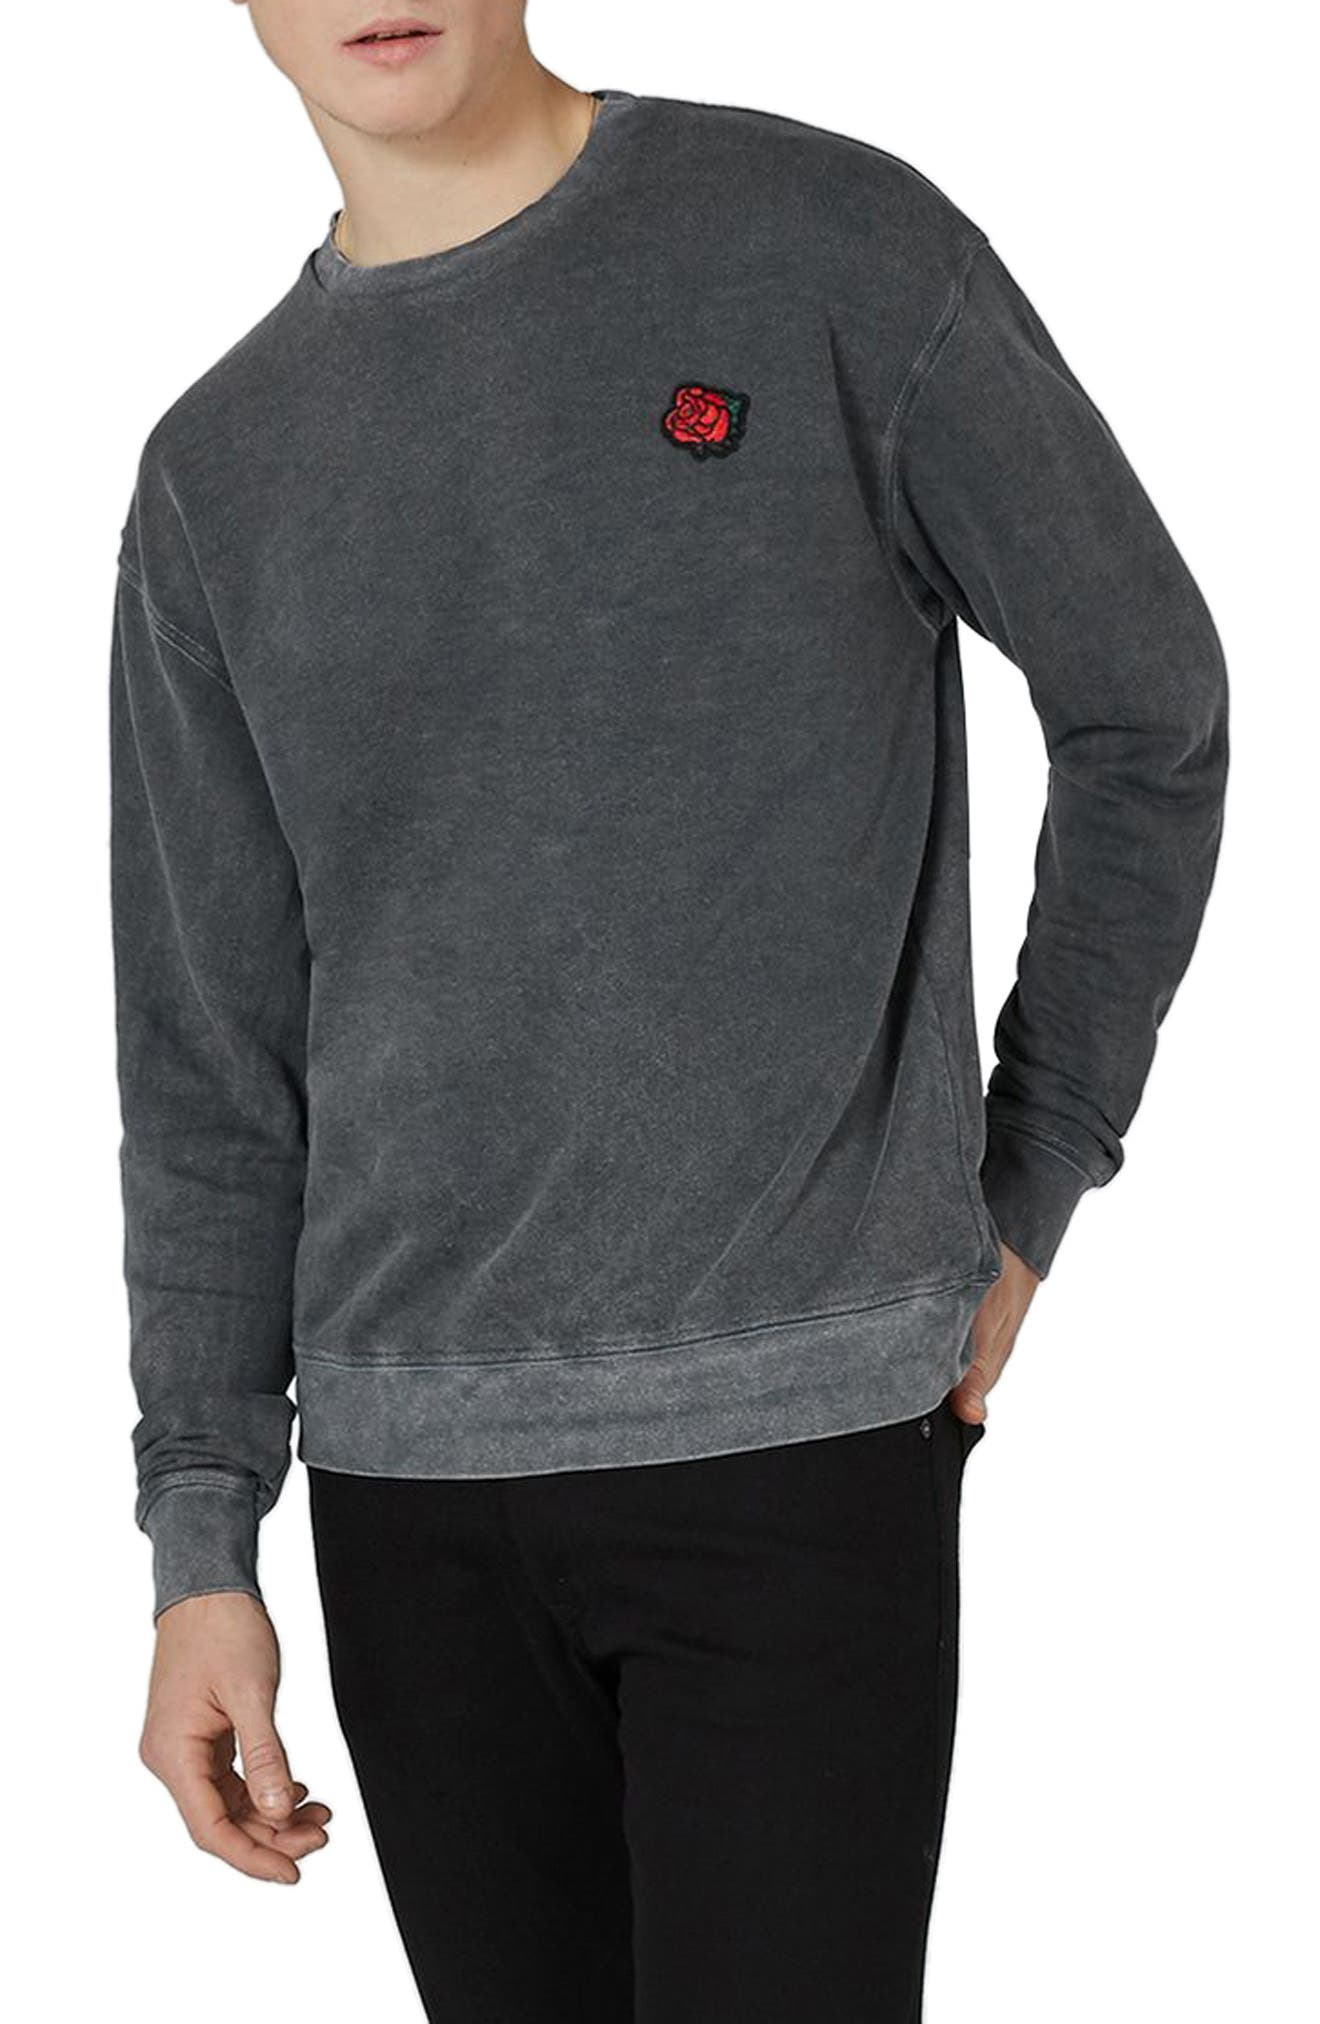 Percy Rose Embroidered Sweatshirt,                             Main thumbnail 1, color,